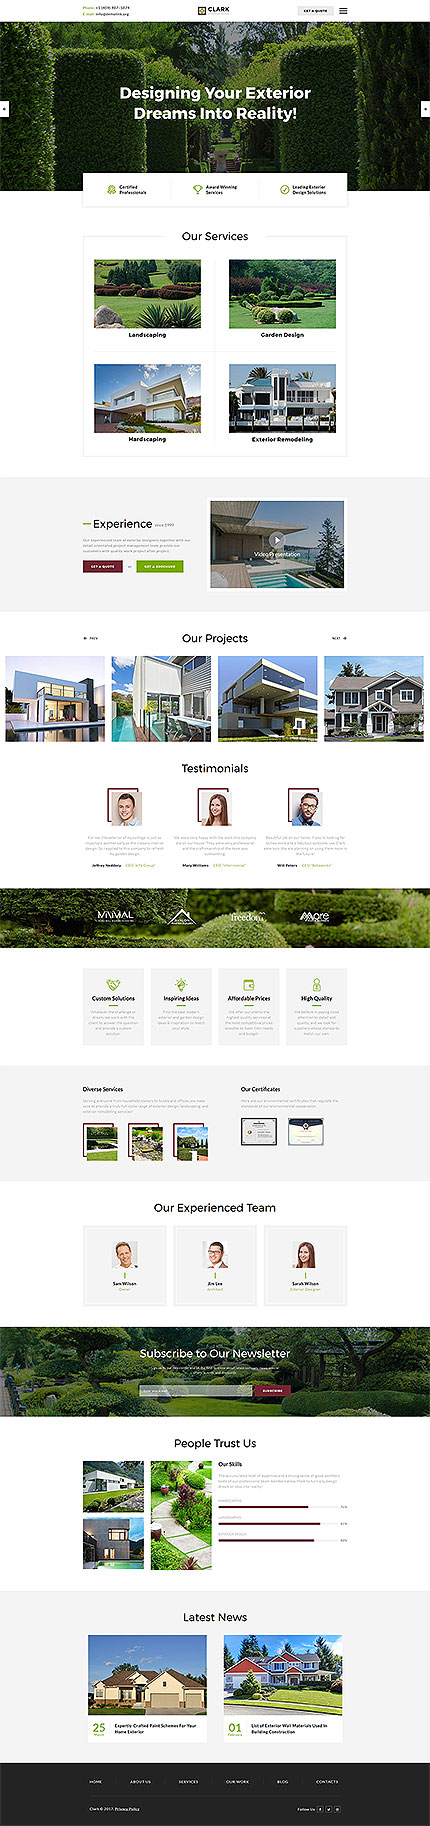 Exterior Design Most Popular website inspirations at your coffee break? Browse for more Bootstrap #templates! // Regular price: $75 // Sources available: .HTML,  .PSD #Exterior Design #Most Popular #Bootstrap